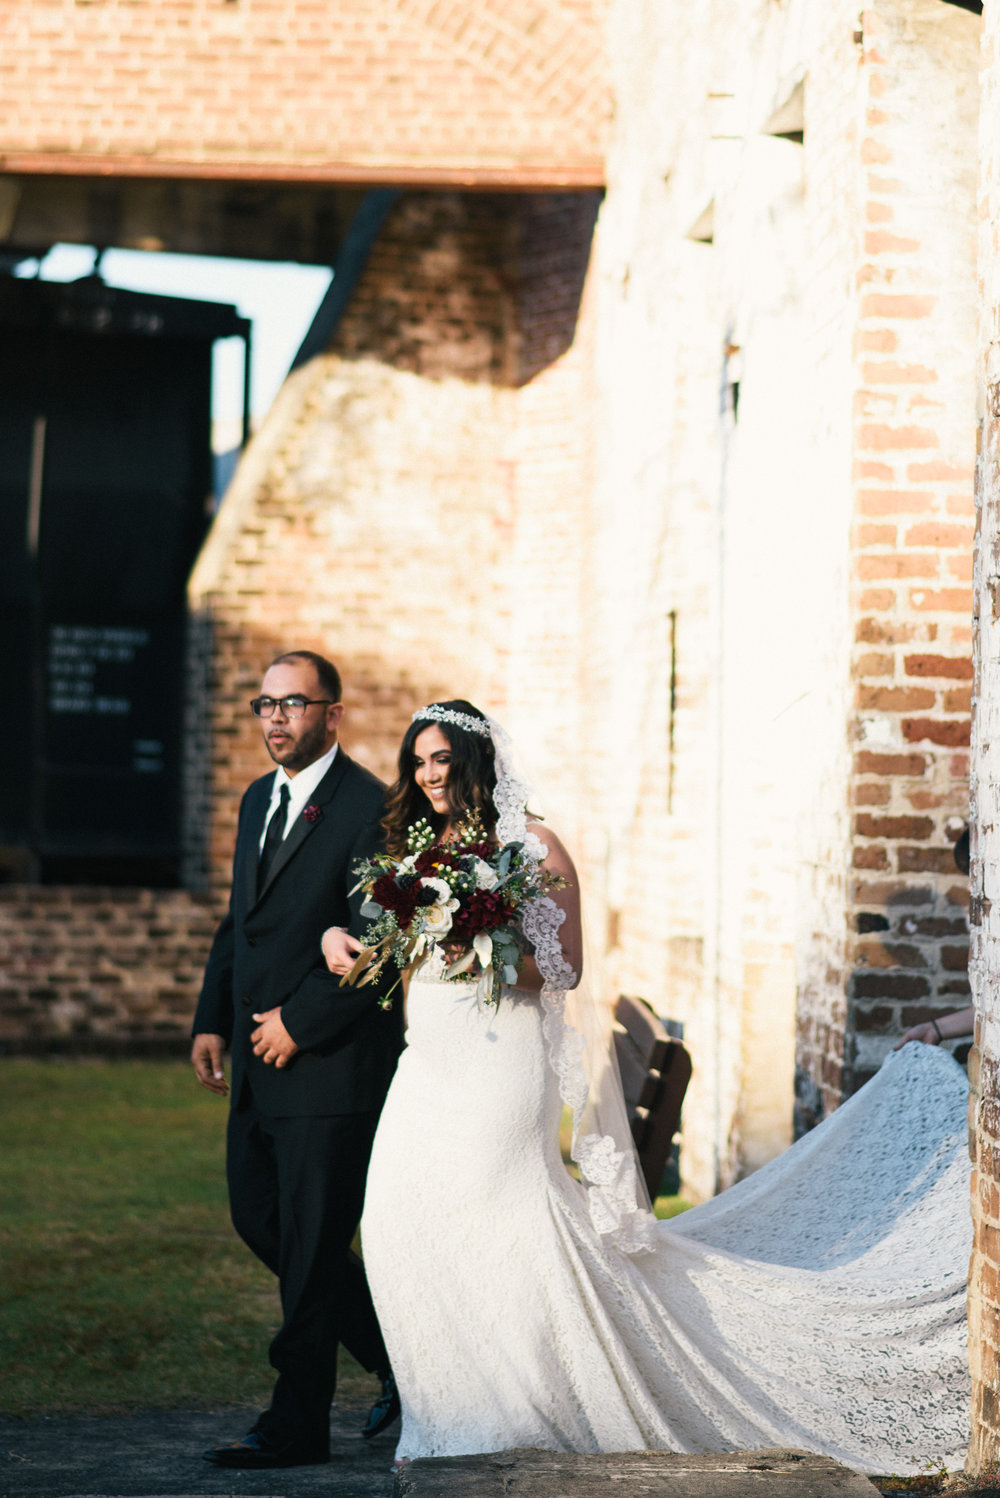 Iggy-and-yesenia-savannah-railroad-museum-wedding-meg-hill-photo- (442 of 1037).jpg